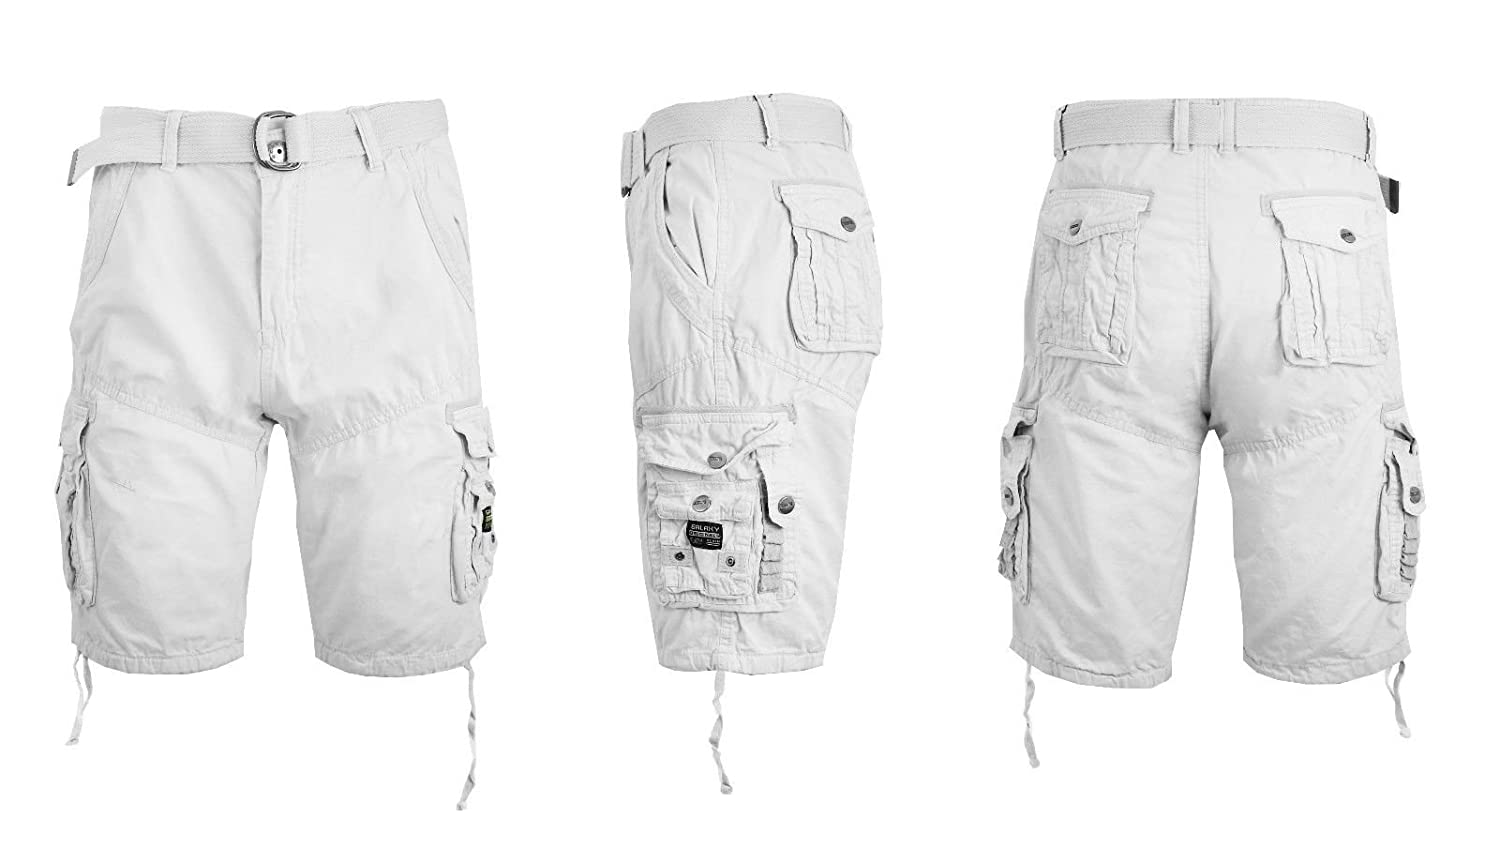 d2441a91c6 Top2: Galaxy by Harvic Mens Cargo Shorts Cotton Belted Vintage Distressed  Lounge